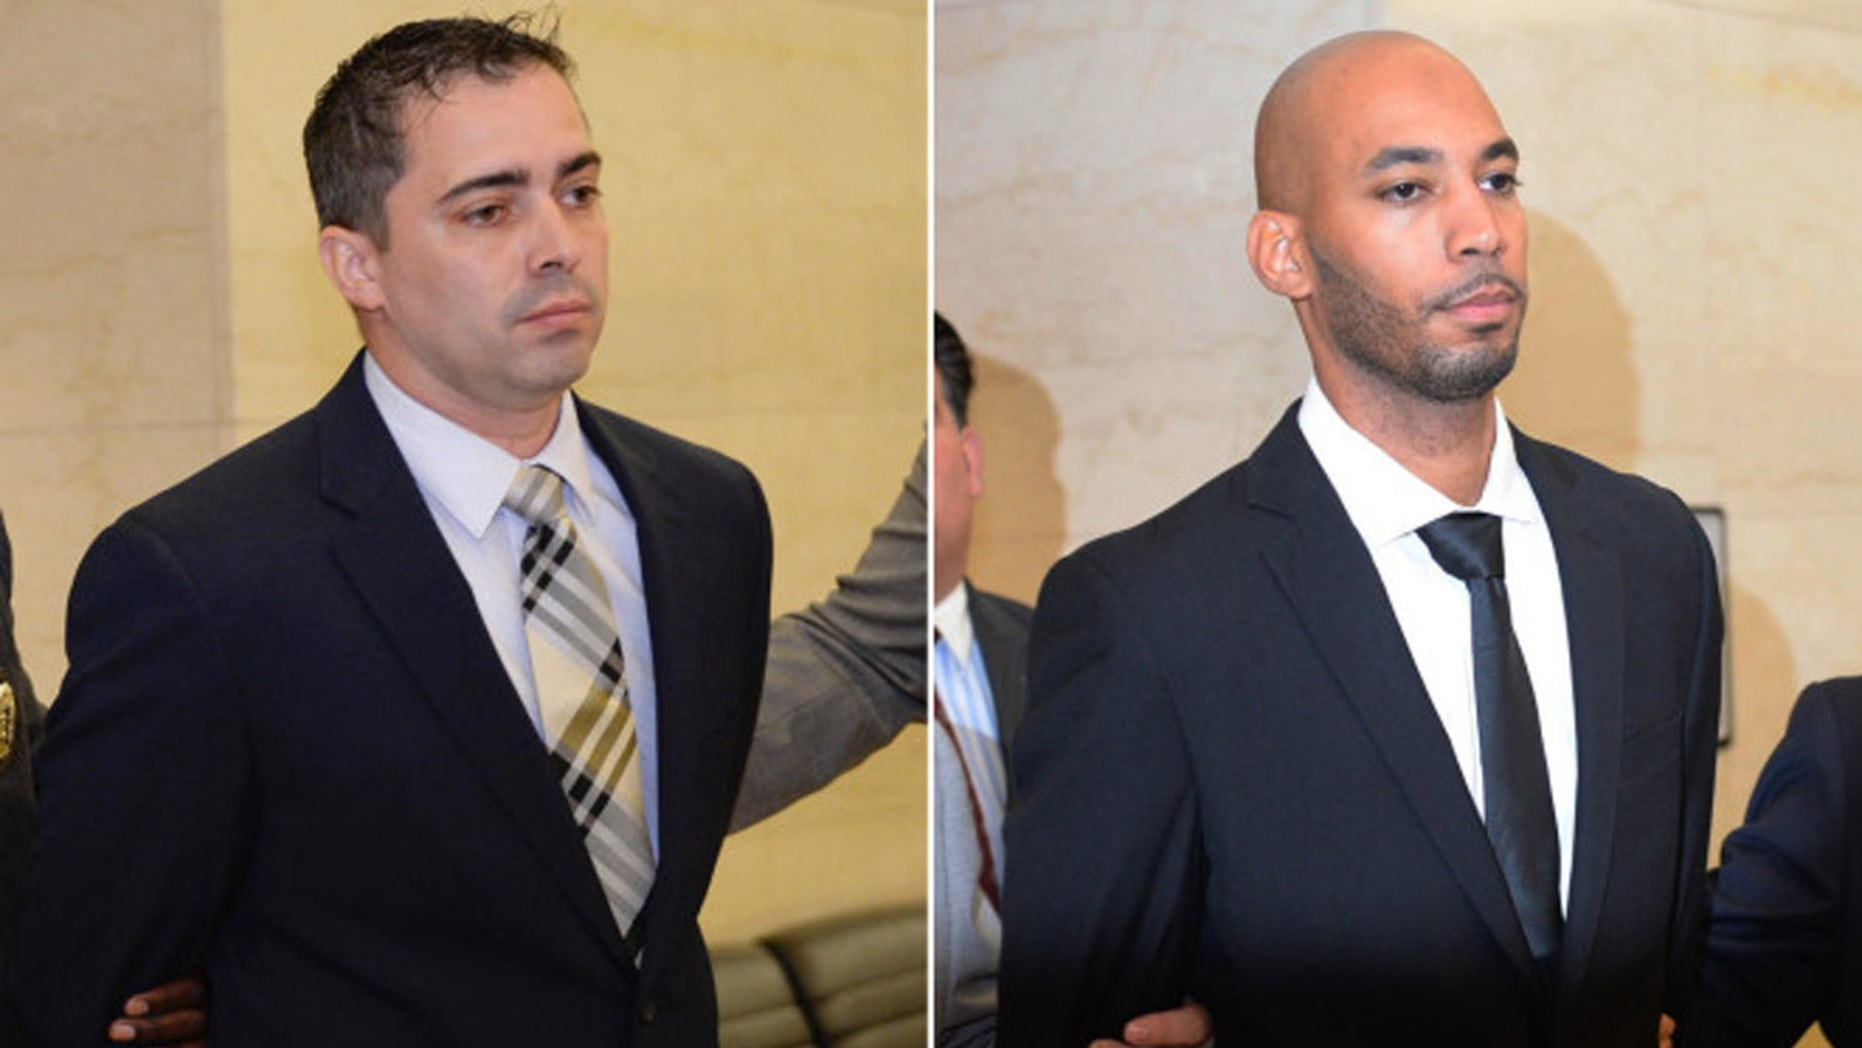 A teenager claimed two NYPD detectives raped her while she was under arrest.